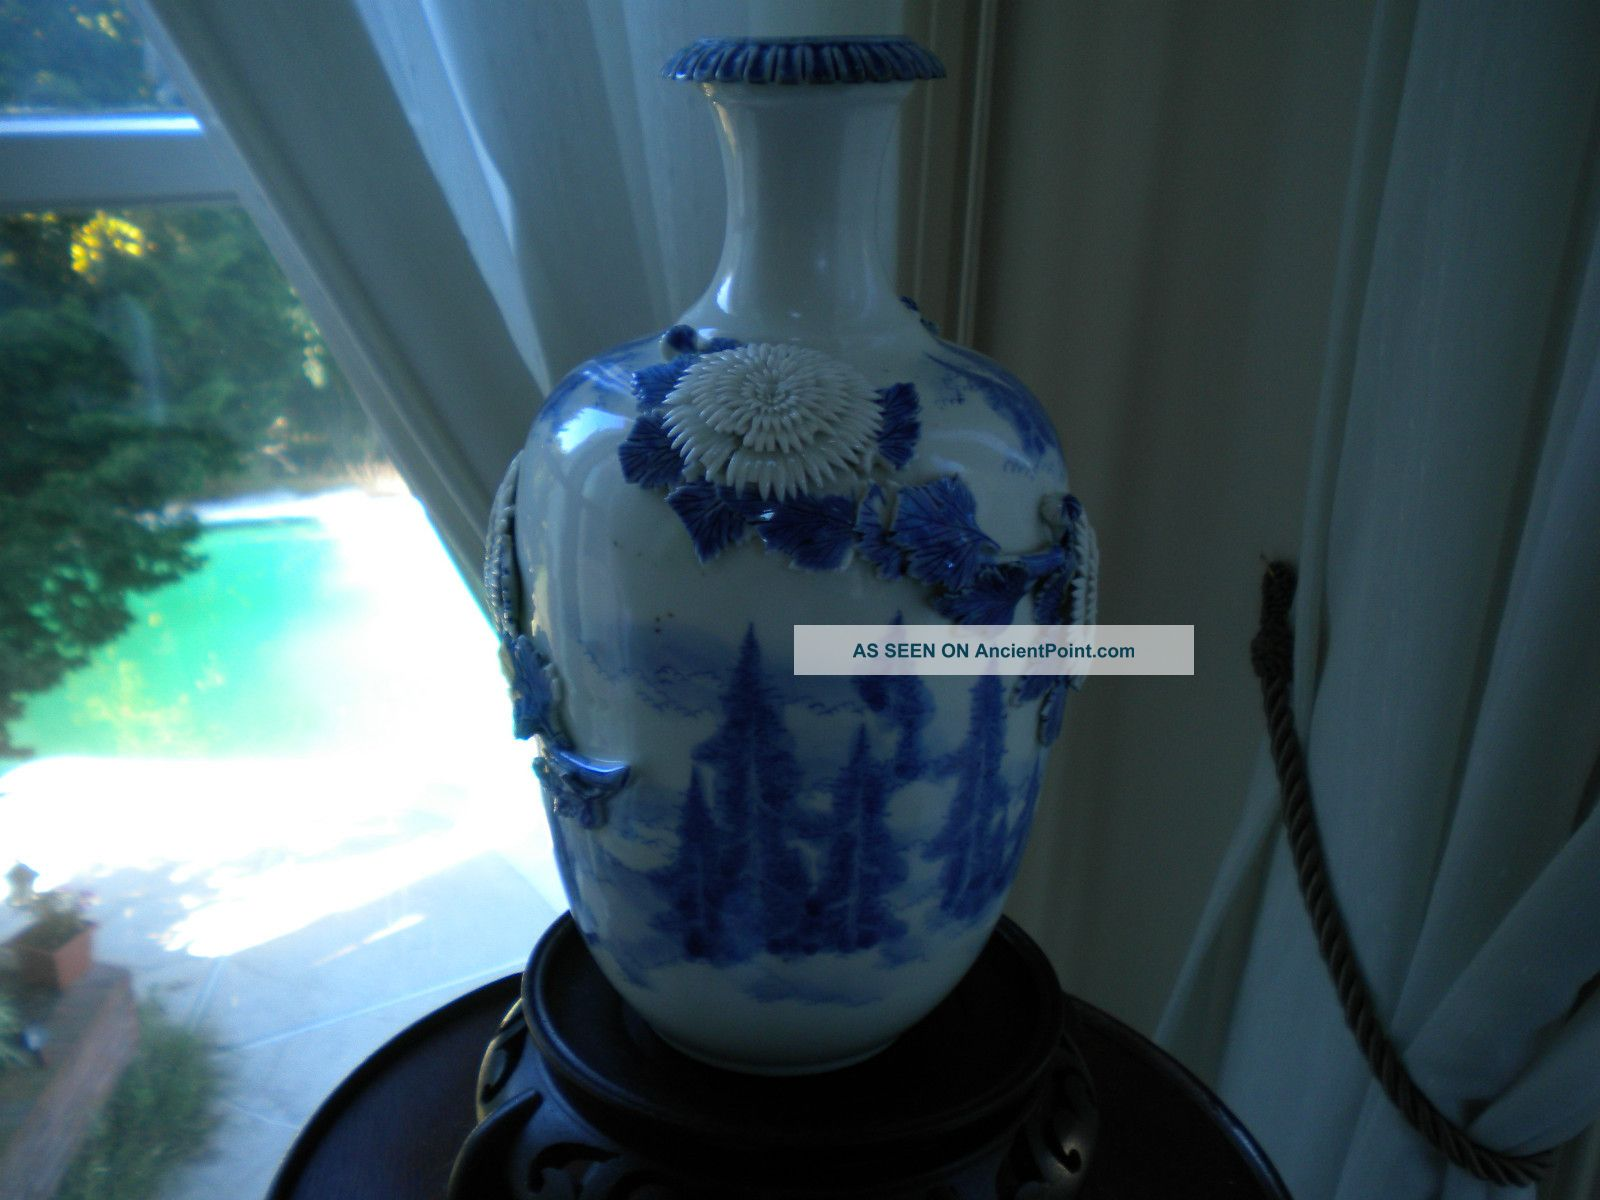 Hirado Vase With Pines In The Clouds Vases photo